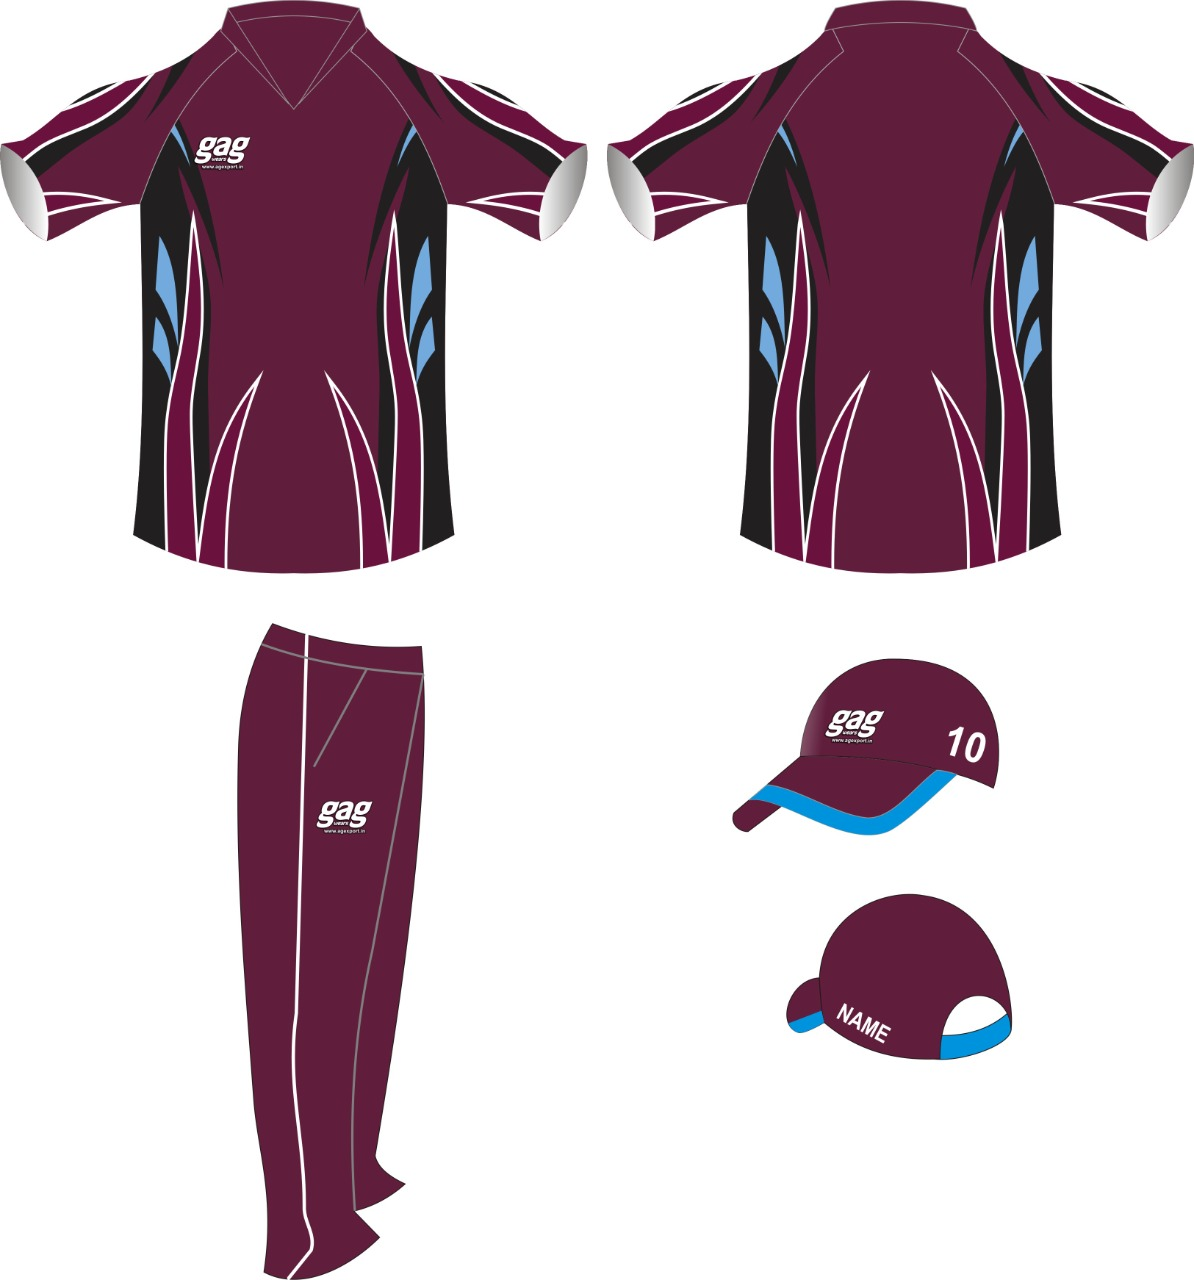 Womens Cricket Uniform Manufacturers in Jalandhar in South Korea